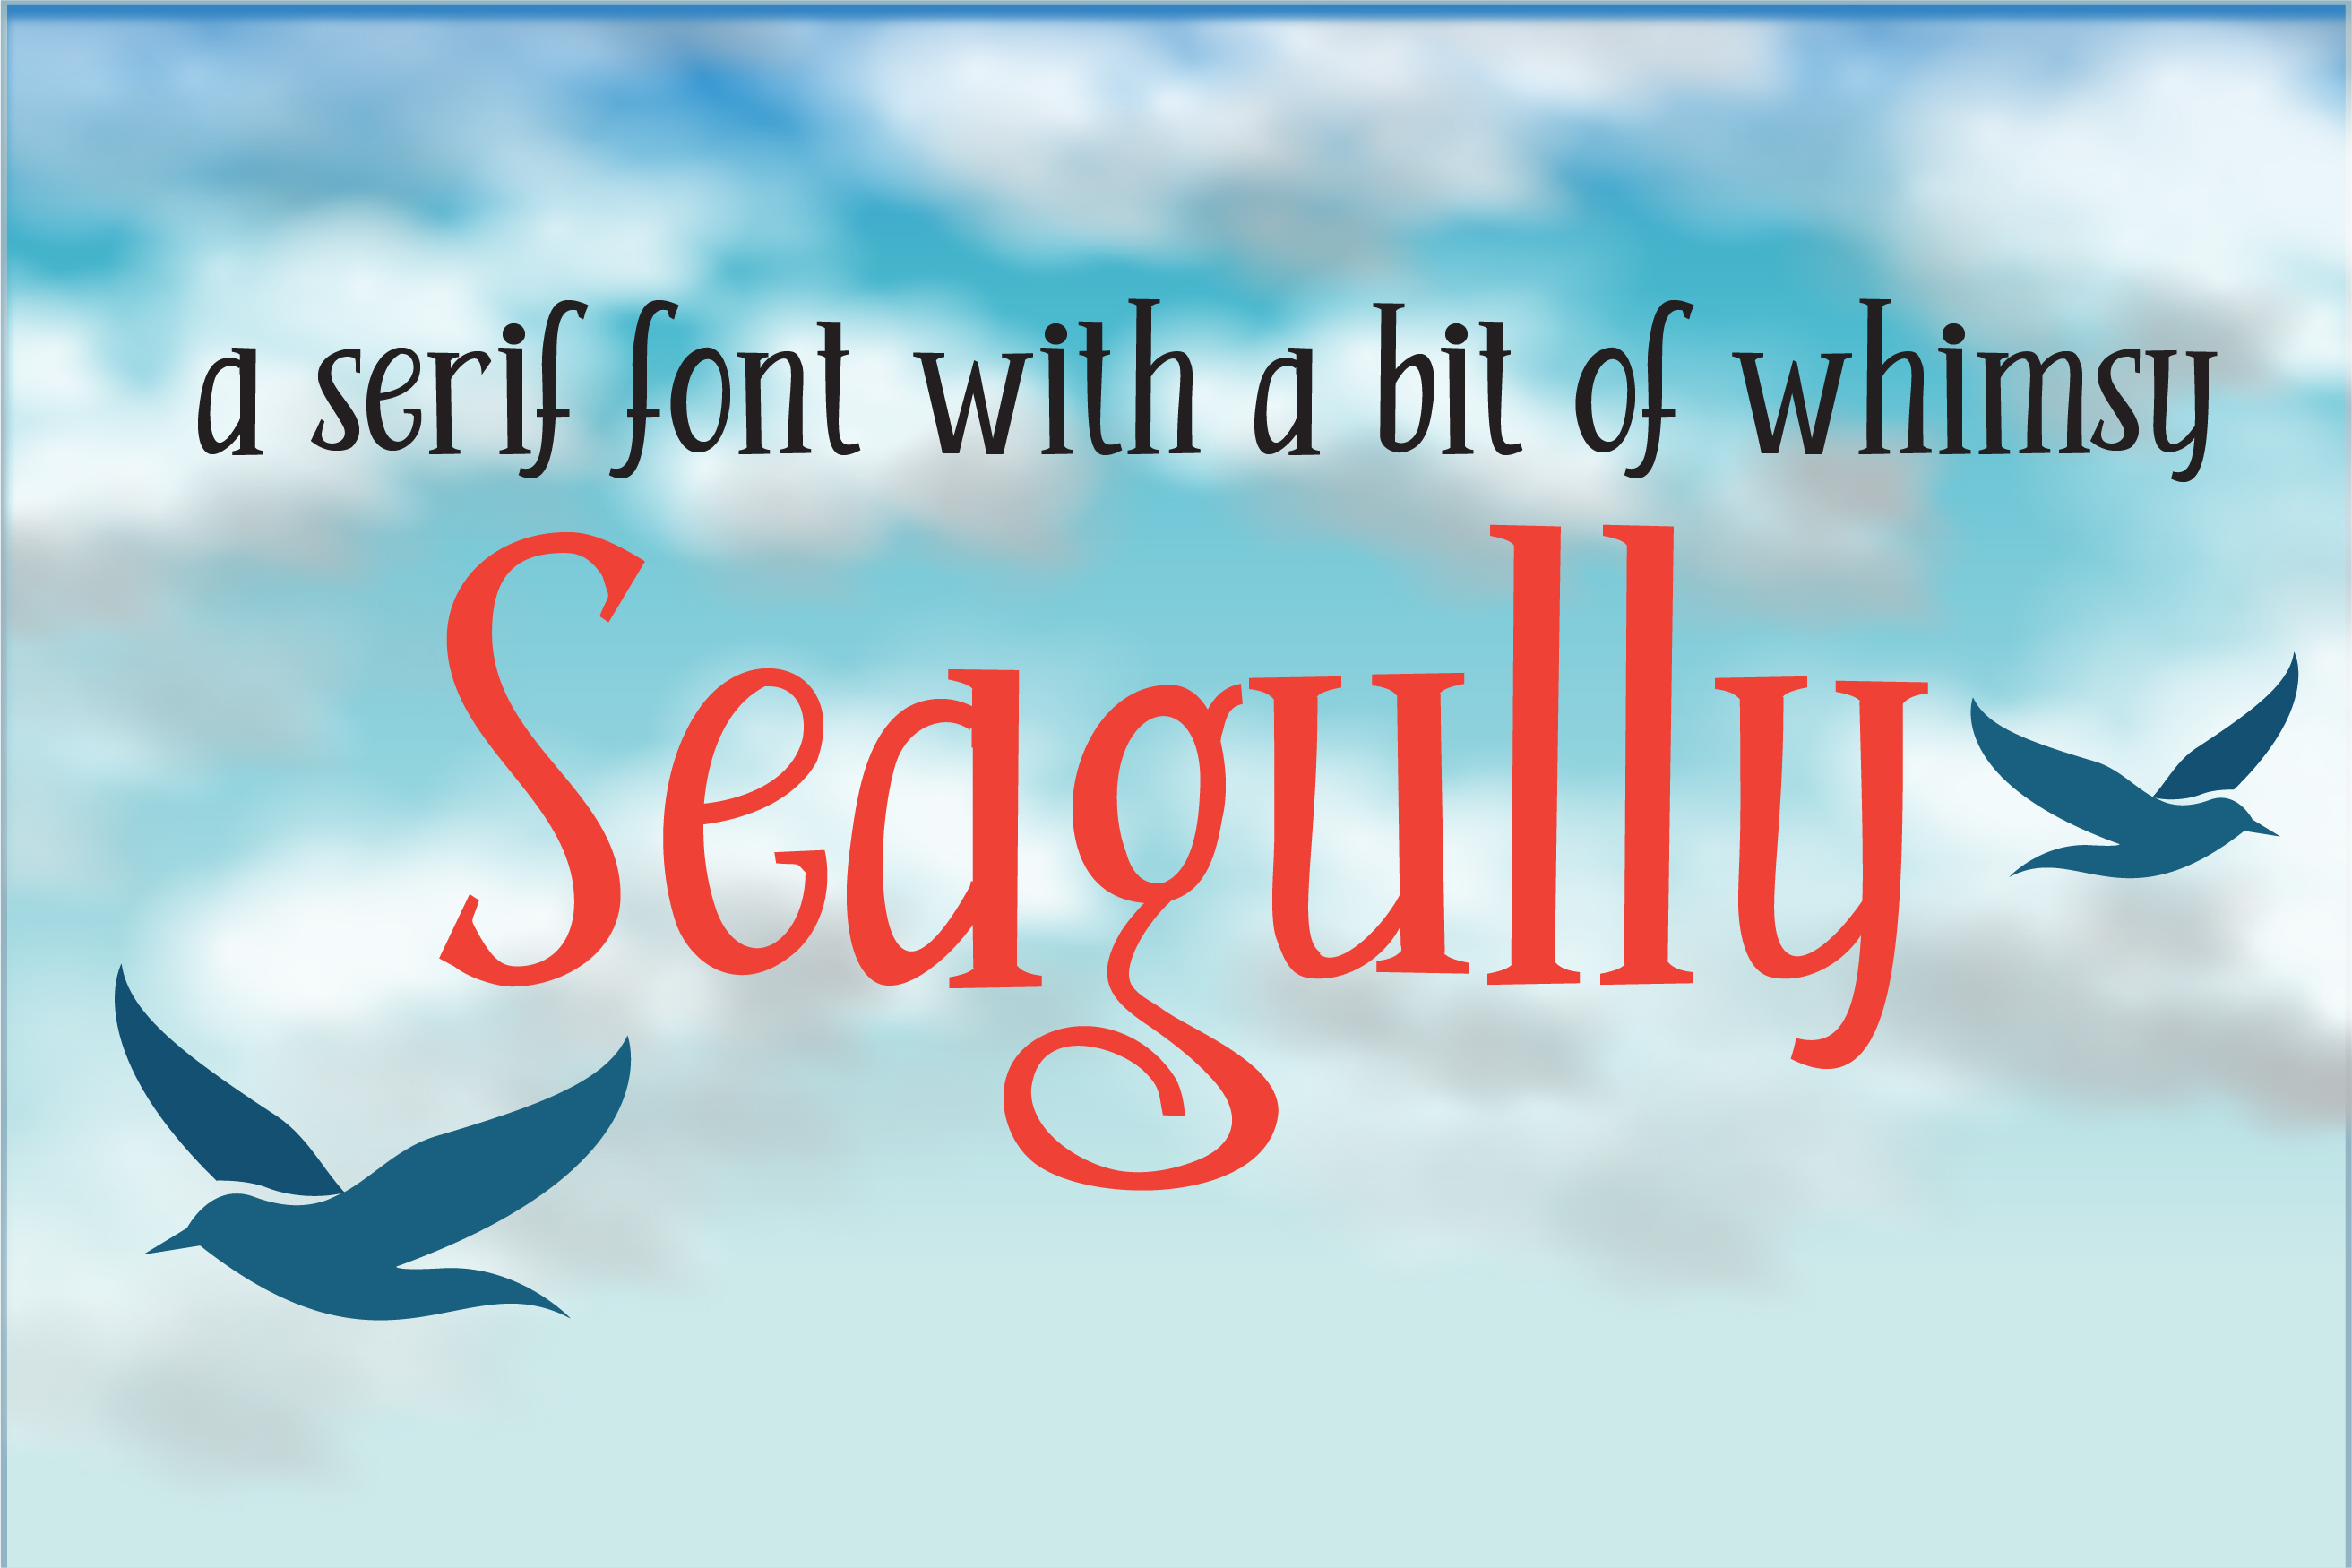 PN Seagully example image 1